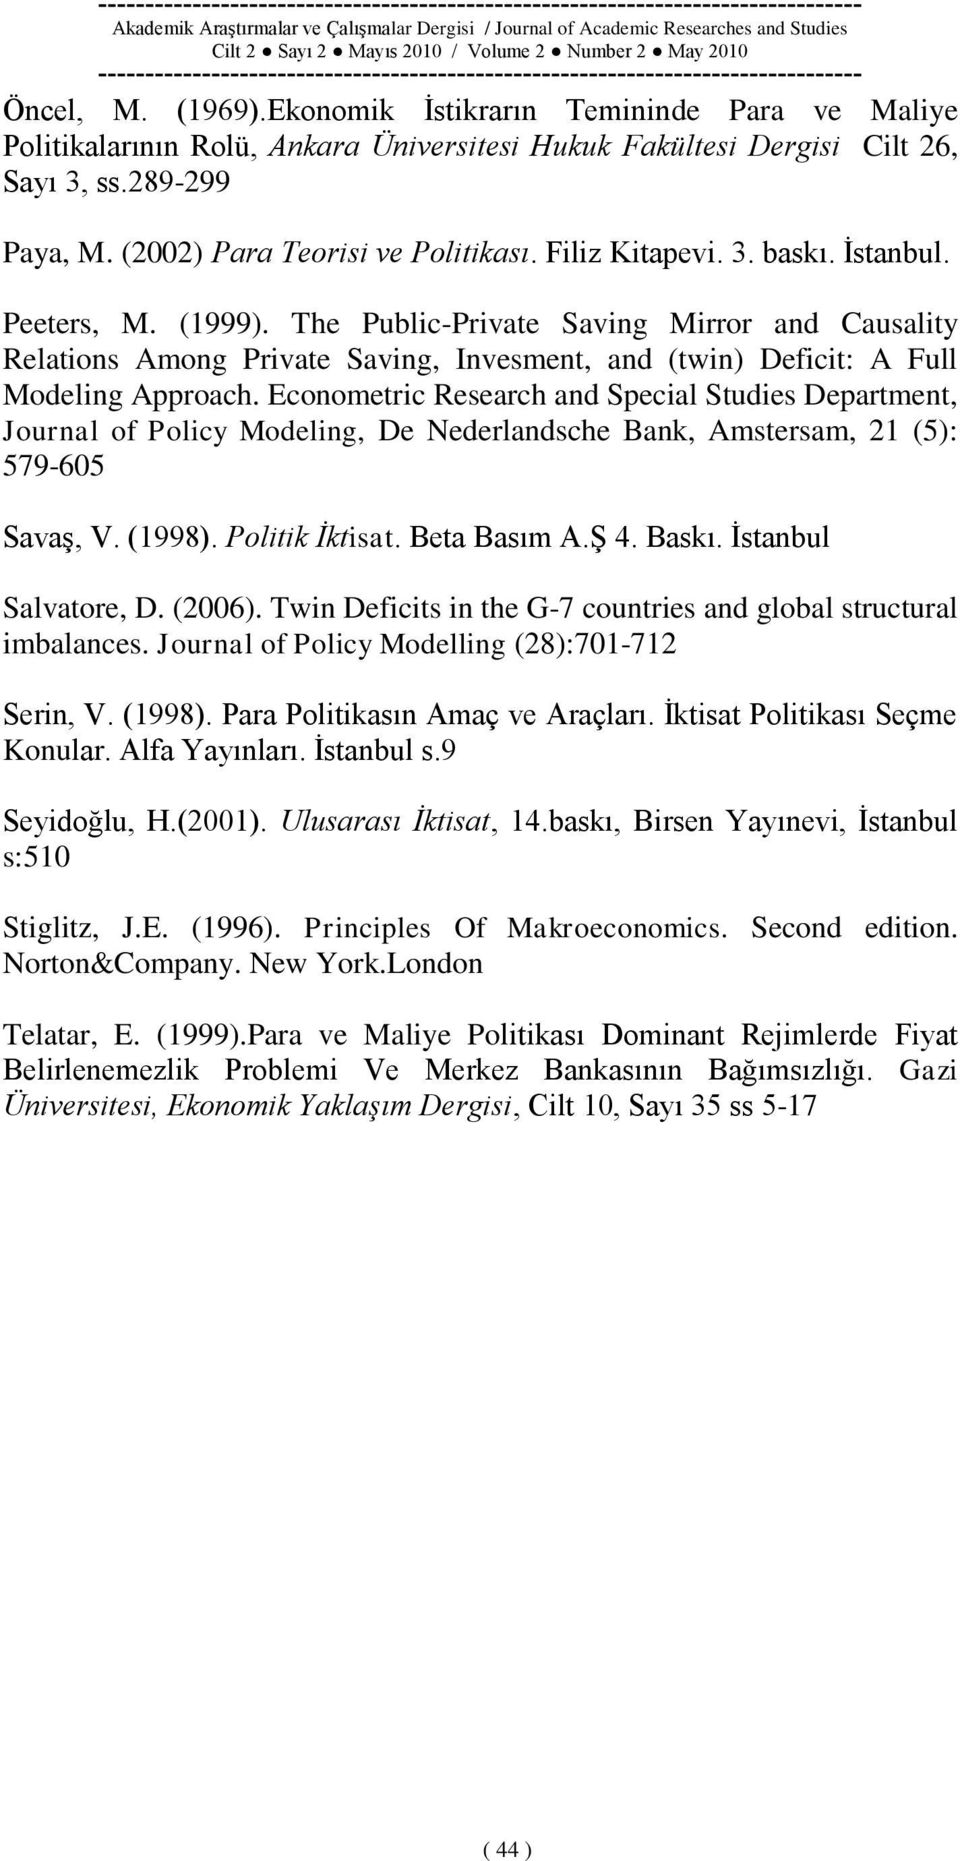 Econometric Research and Special Studies Department, Journal of Policy Modeling, De Nederlandsche Bank, Amstersam, 21 (5): 579-605 SavaĢ, V. (1998). Politik İktisat. Beta Basım A.ġ 4. Baskı.